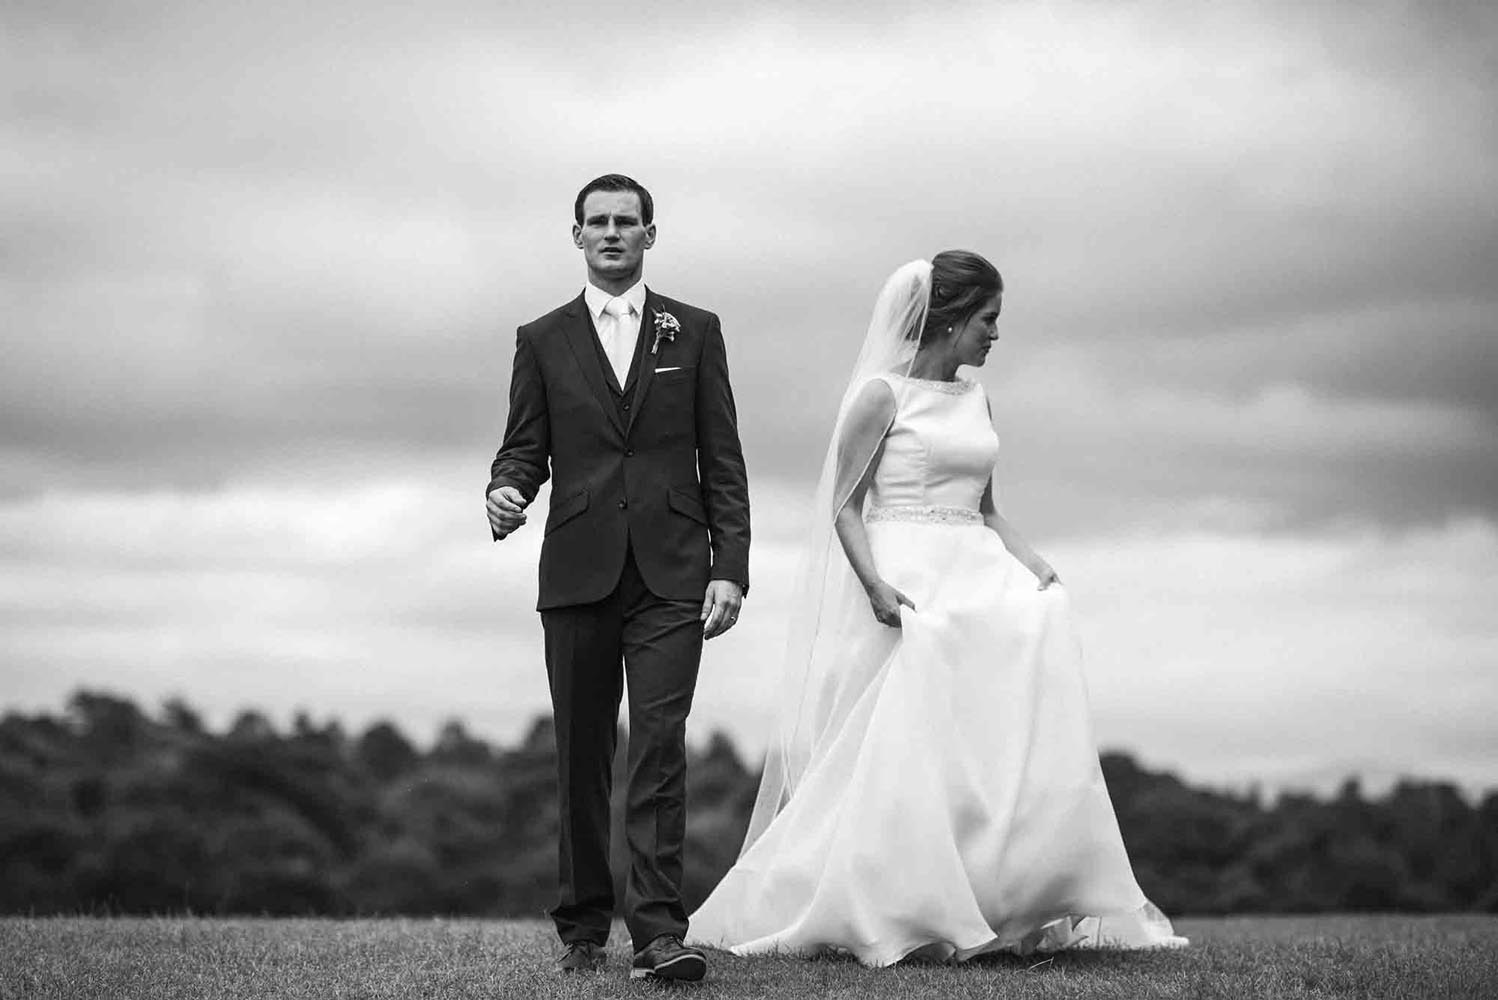 Black and white photo of Groom and bride walking together